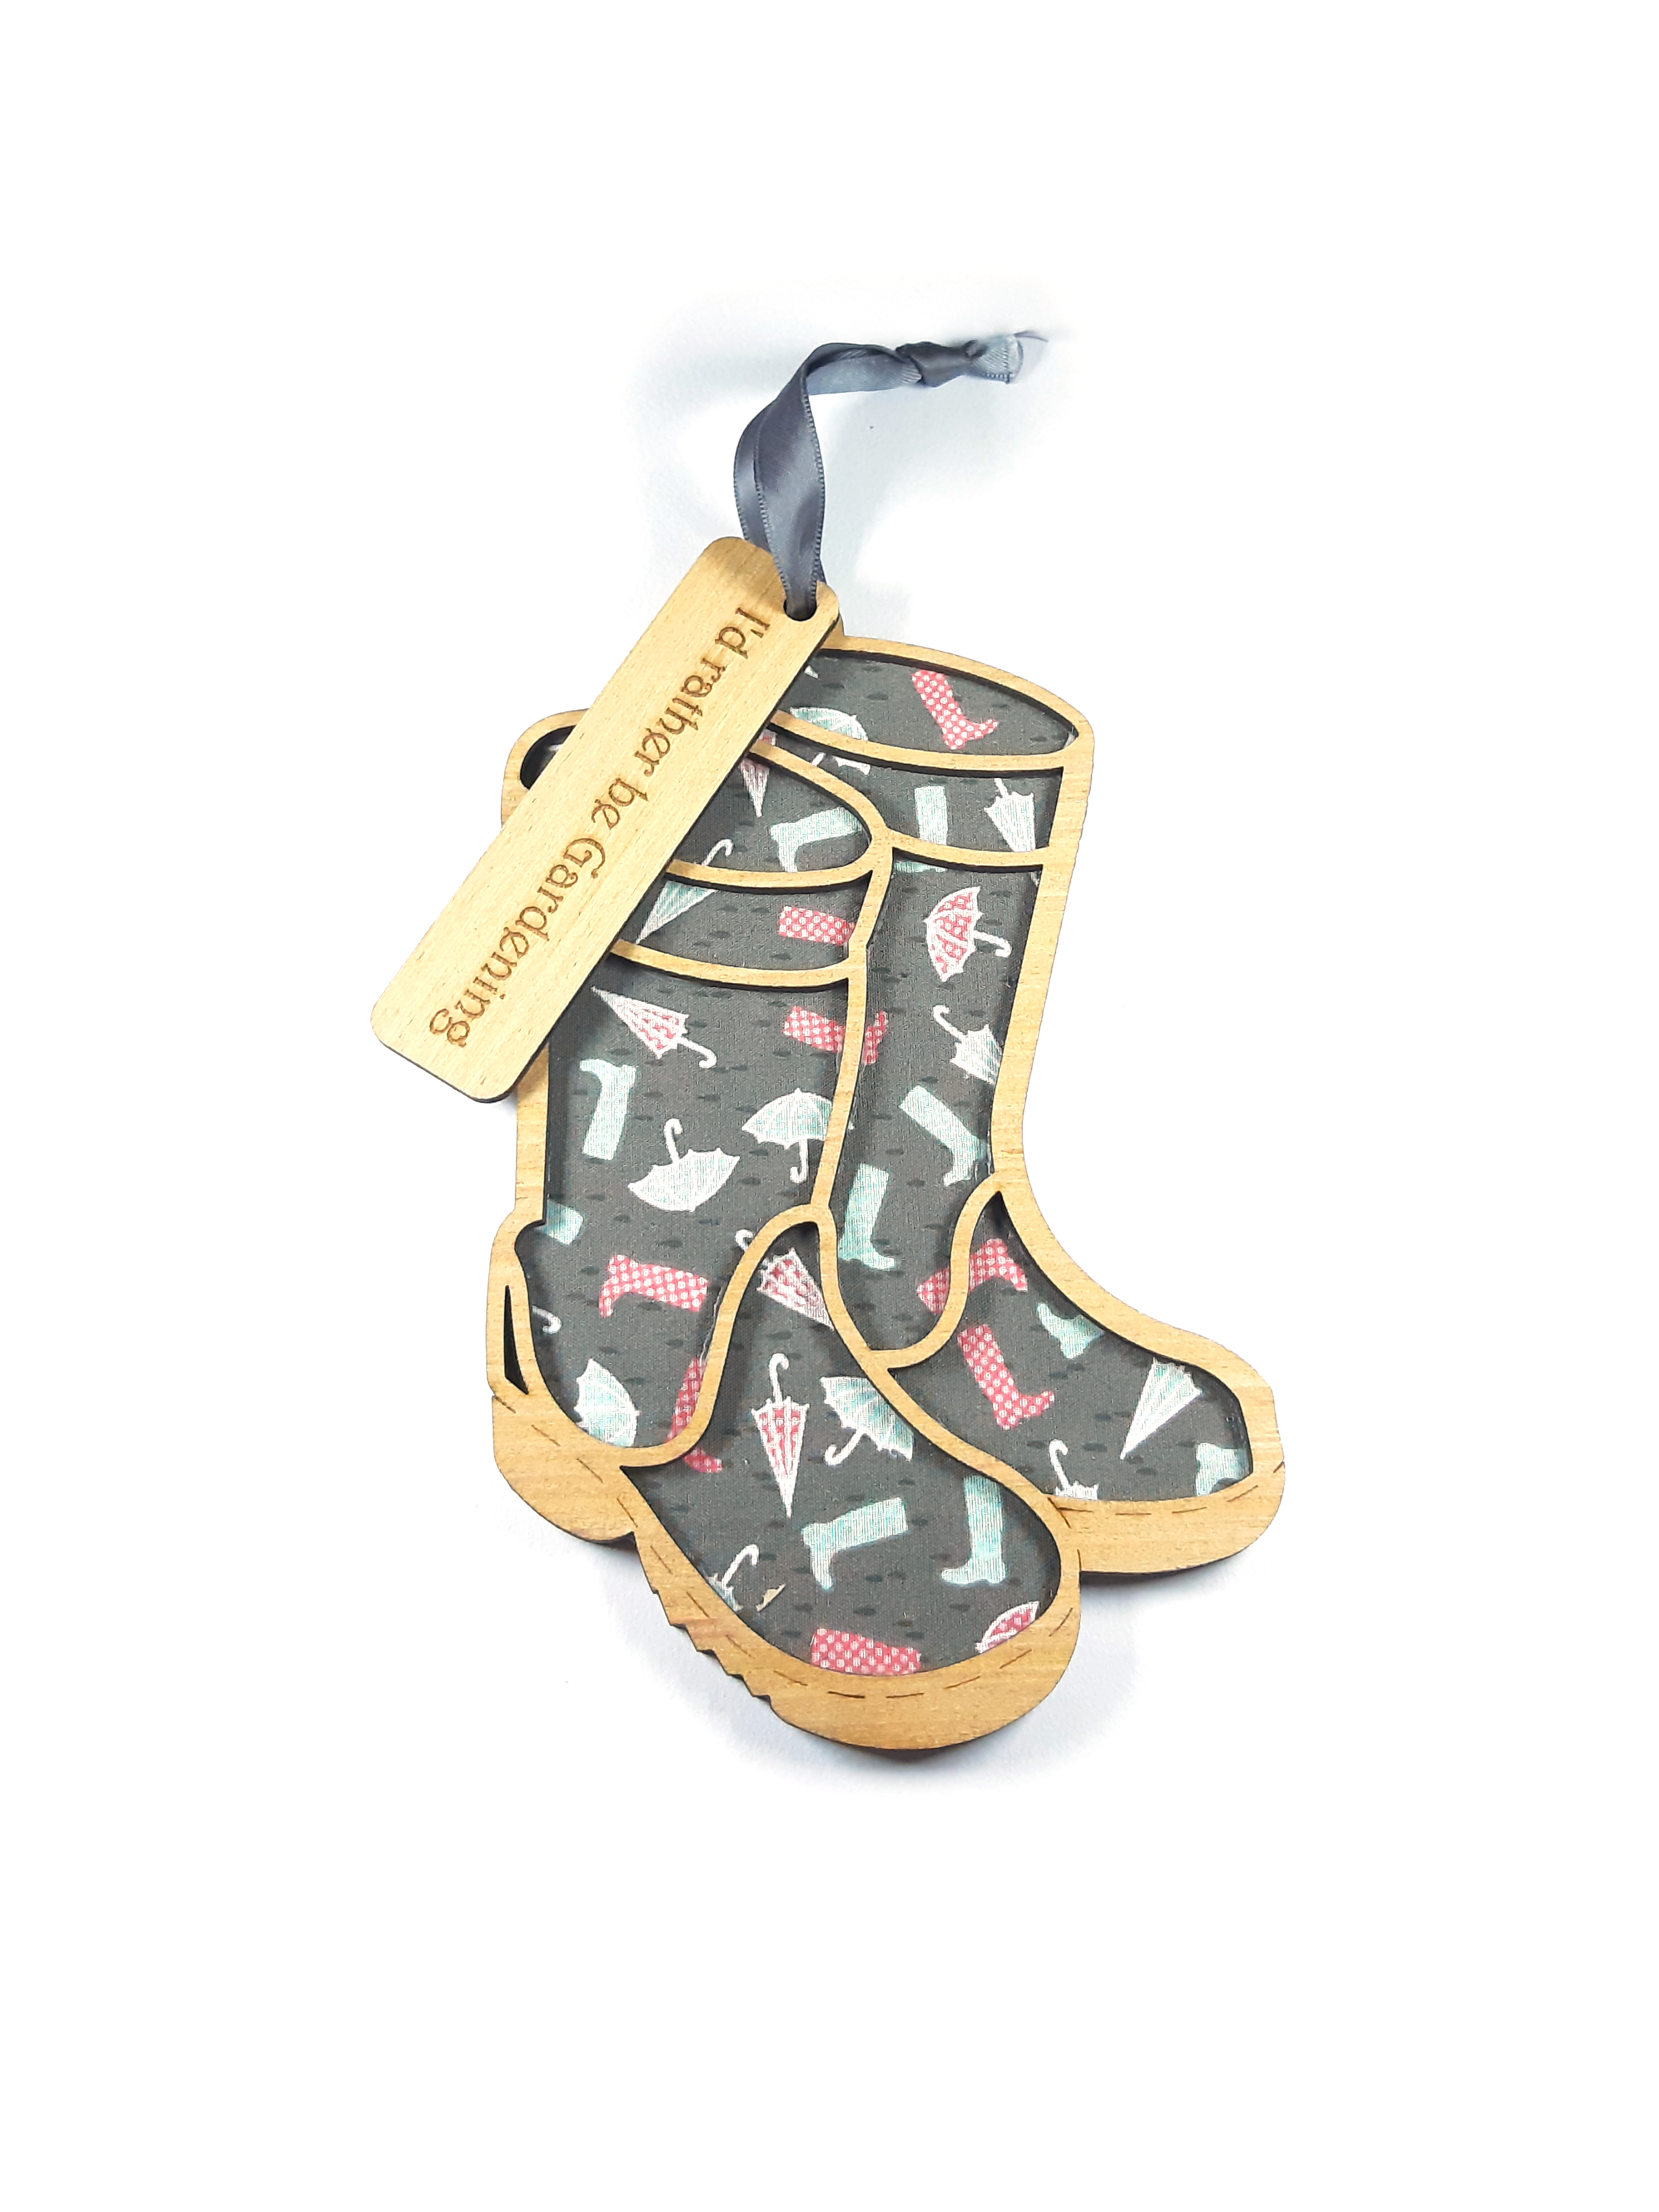 Welly boots - Hanging Decoration